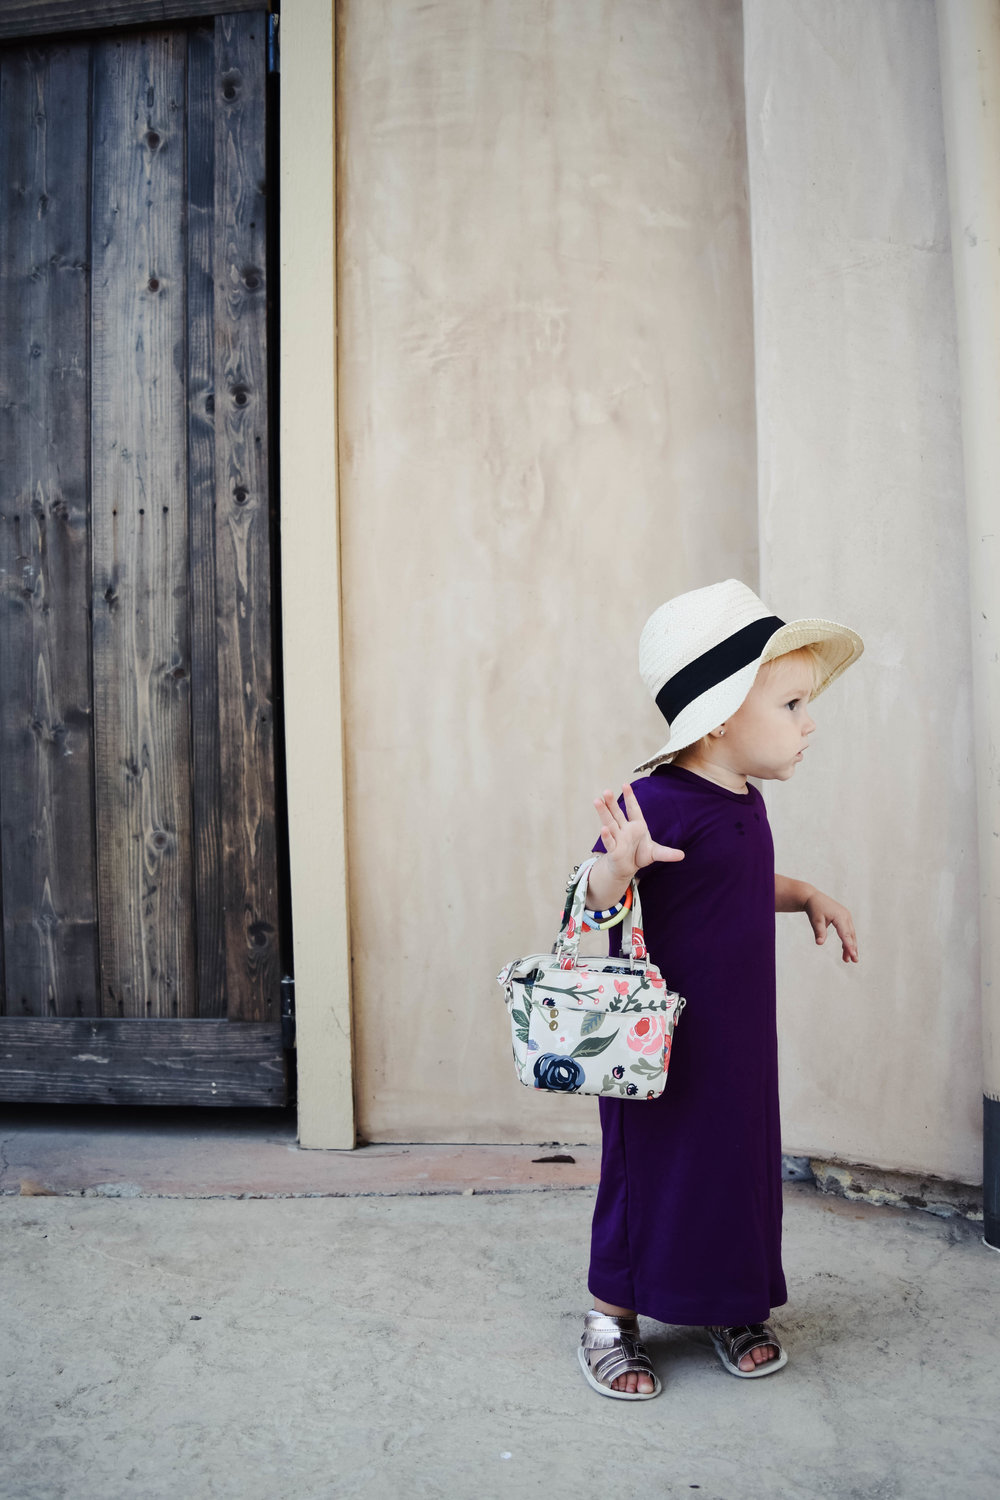 KIDS SUMMER FASHION | Baby Maxi Dress Baby Floppy Hat Baby Purse Ju-Ju-Be Itty Bitty Be